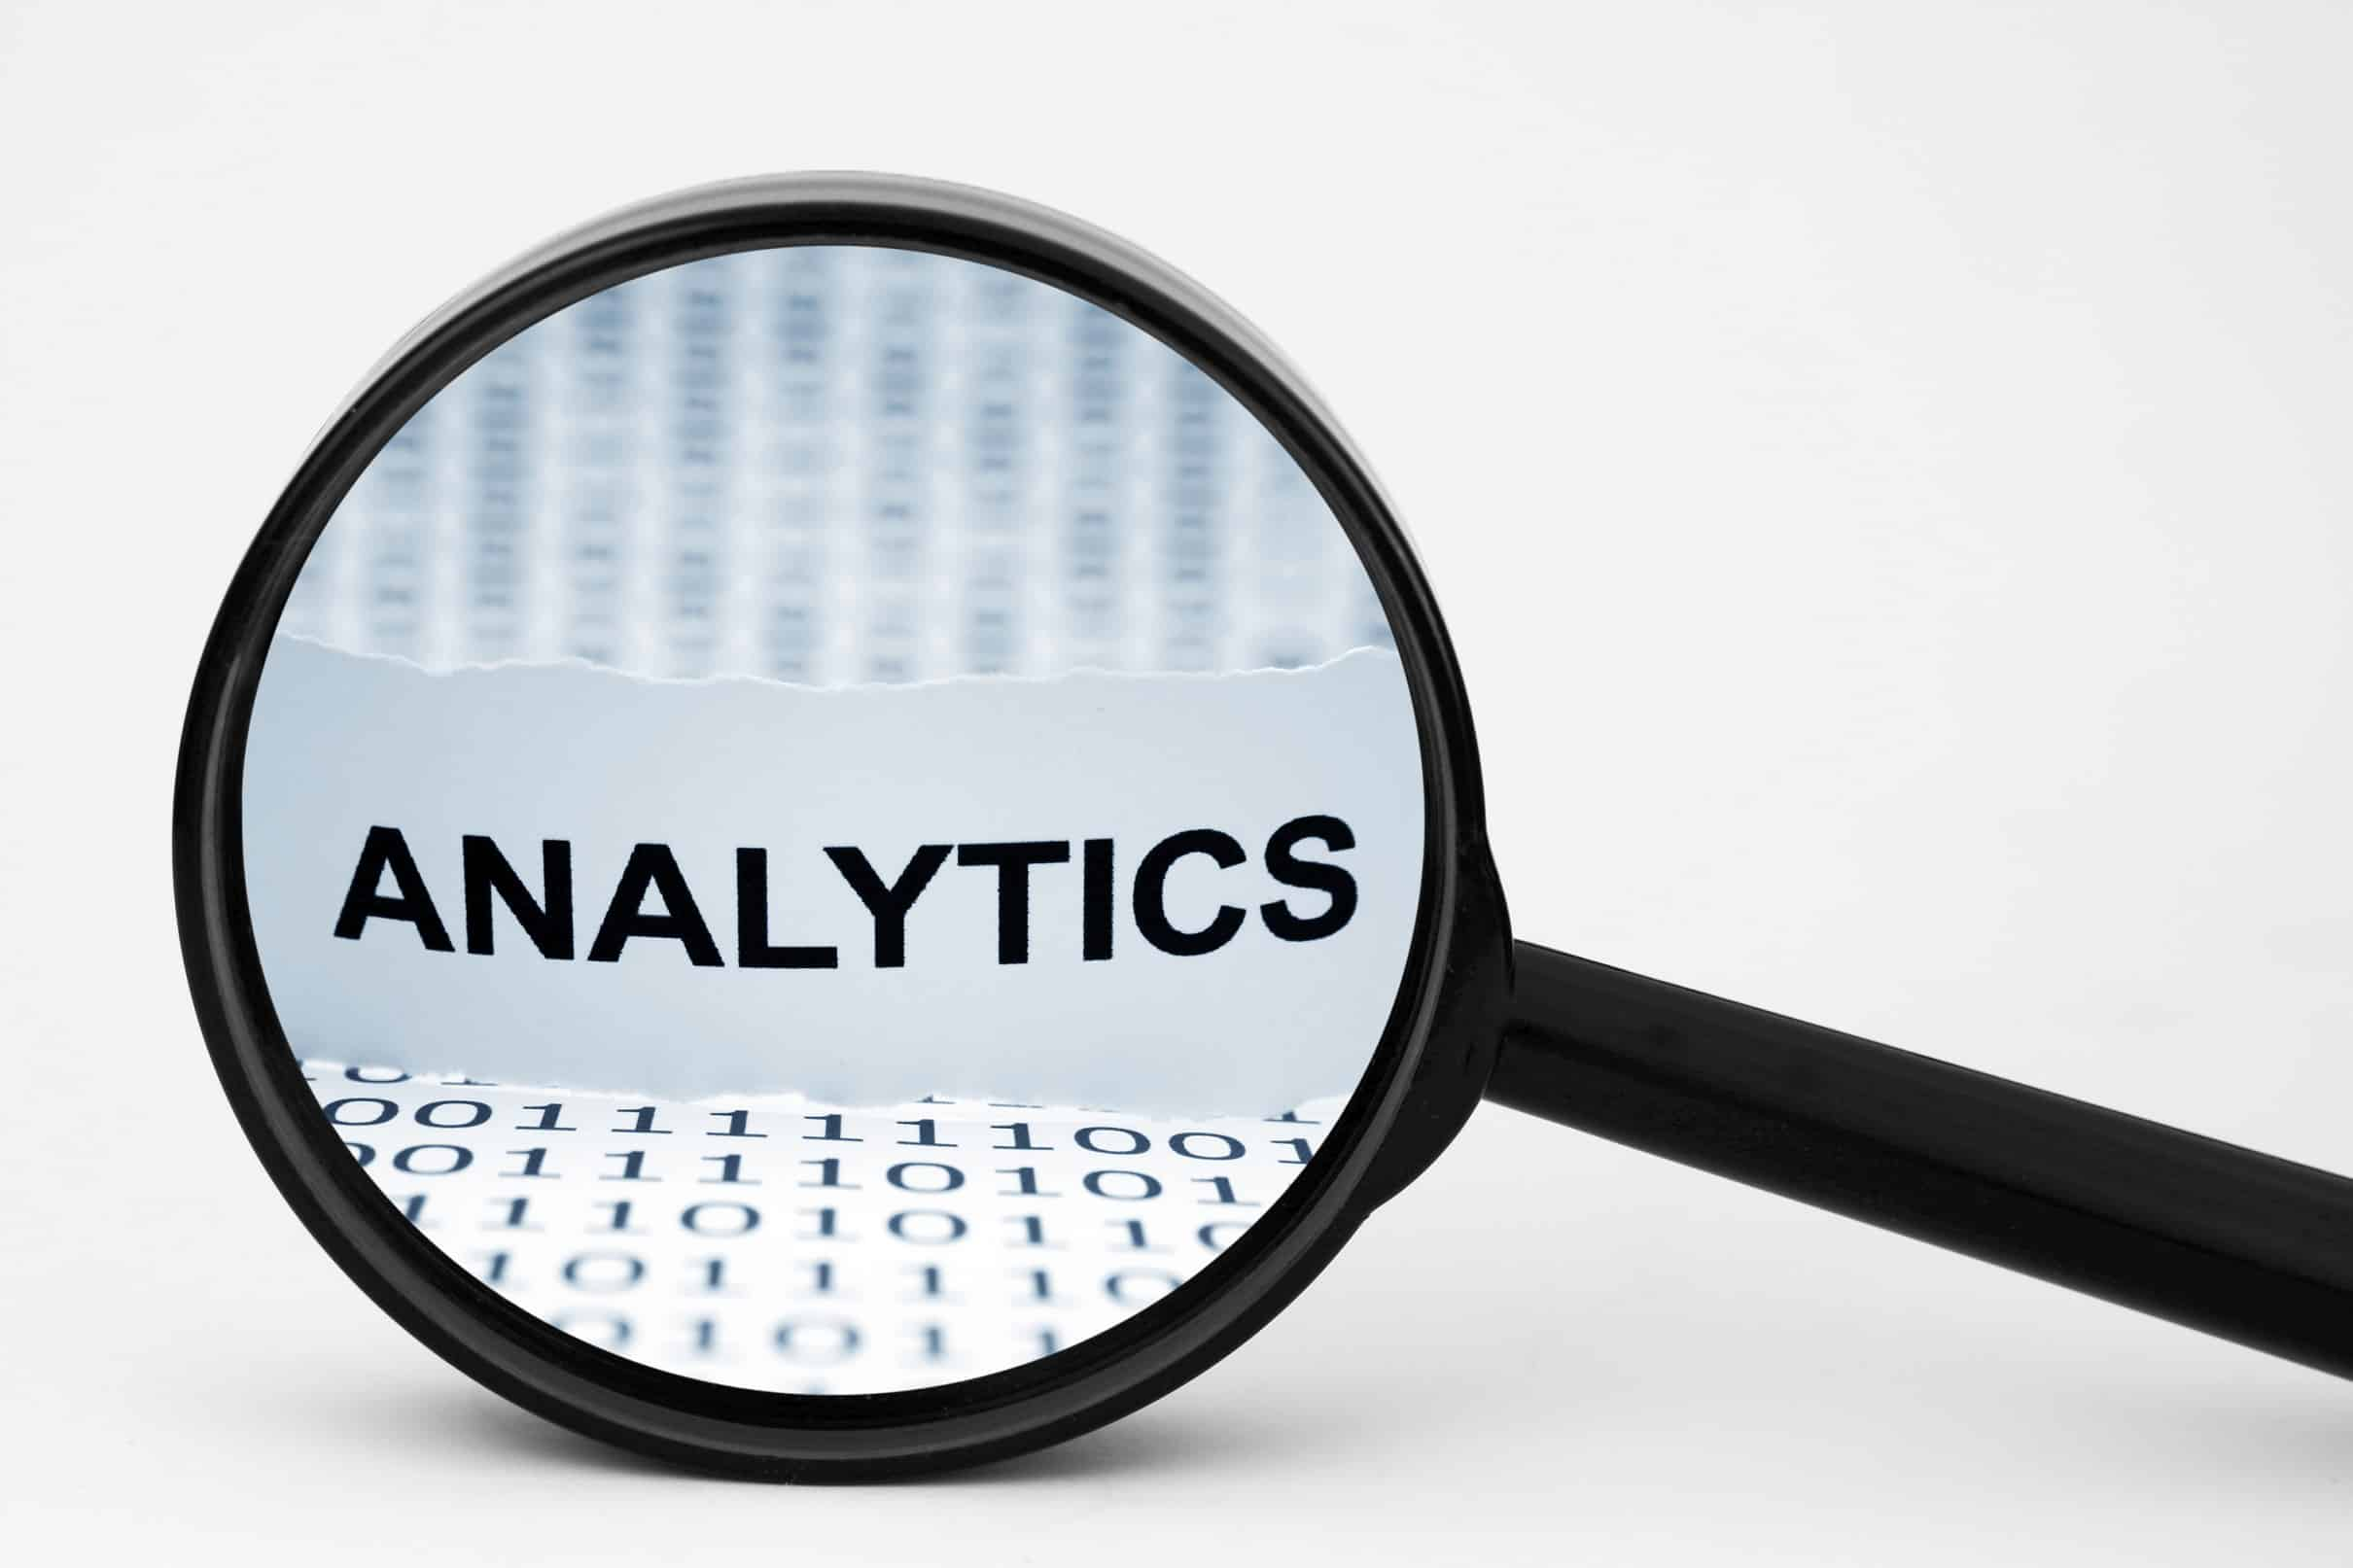 data analys Data analysis products enable you perform analyses and gain insight into your data in a fraction of the time required with spreadsheets or traditional programming.